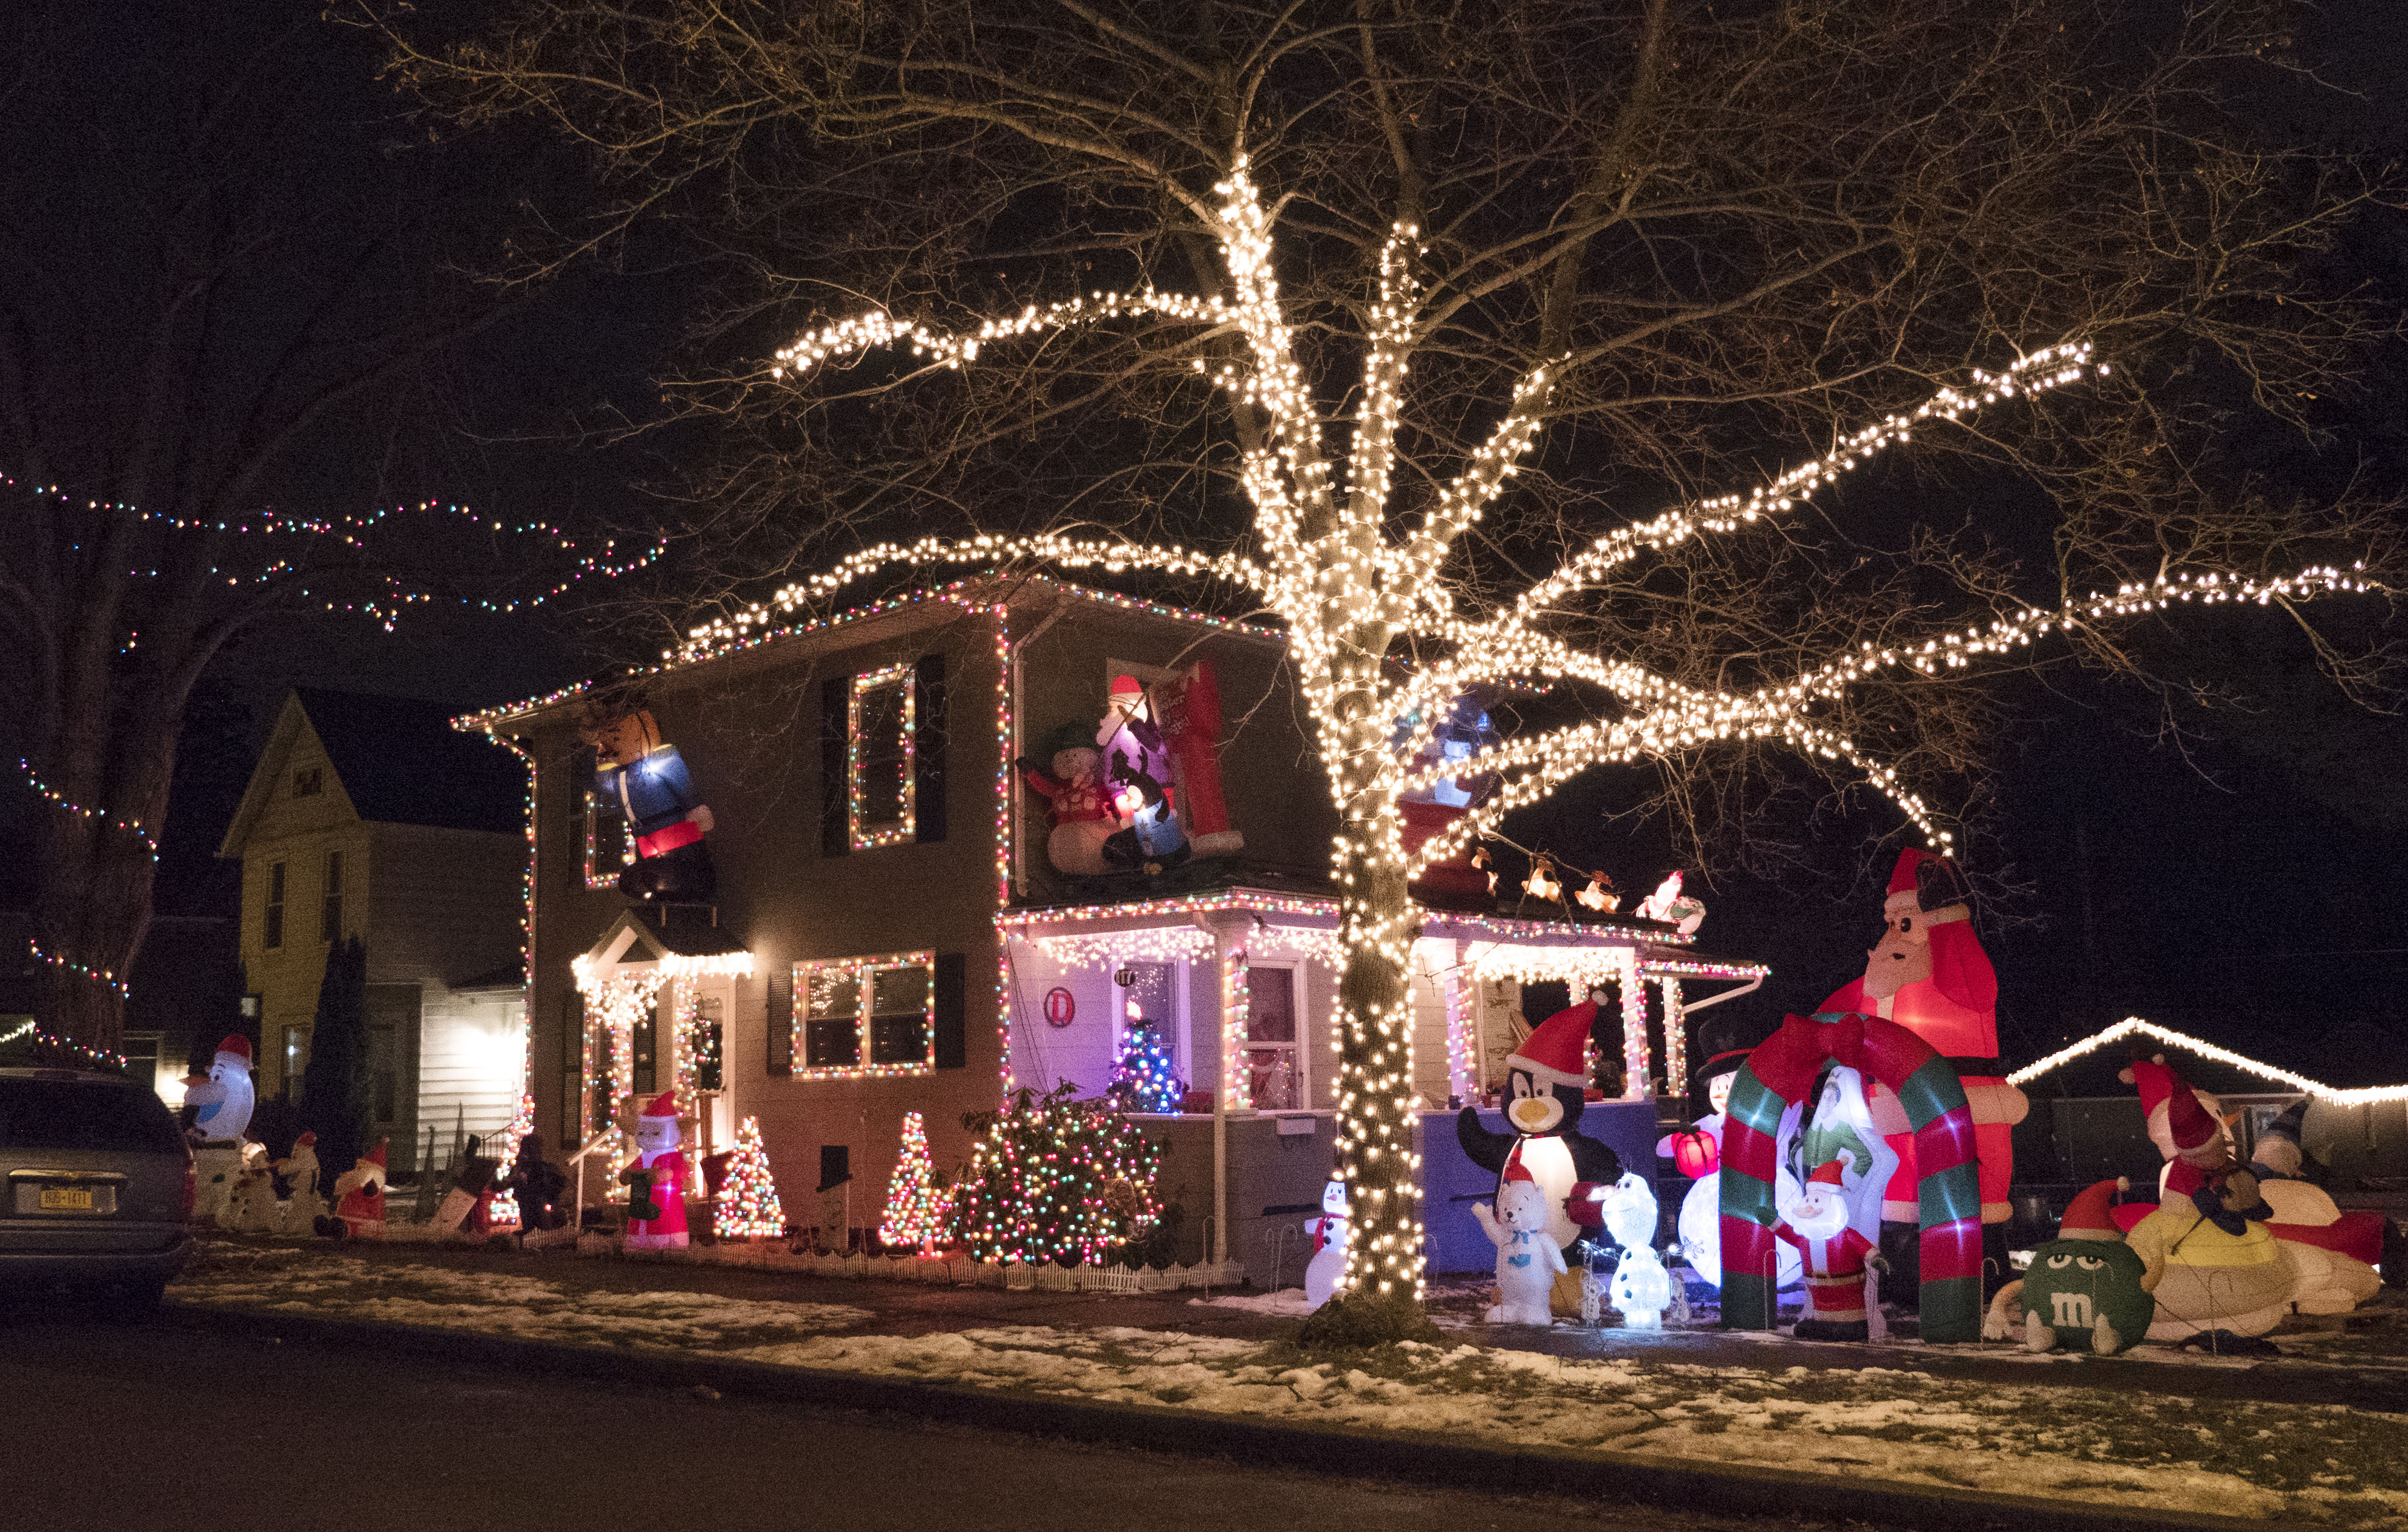 Corning, You've Got Some Clark Griswold in You